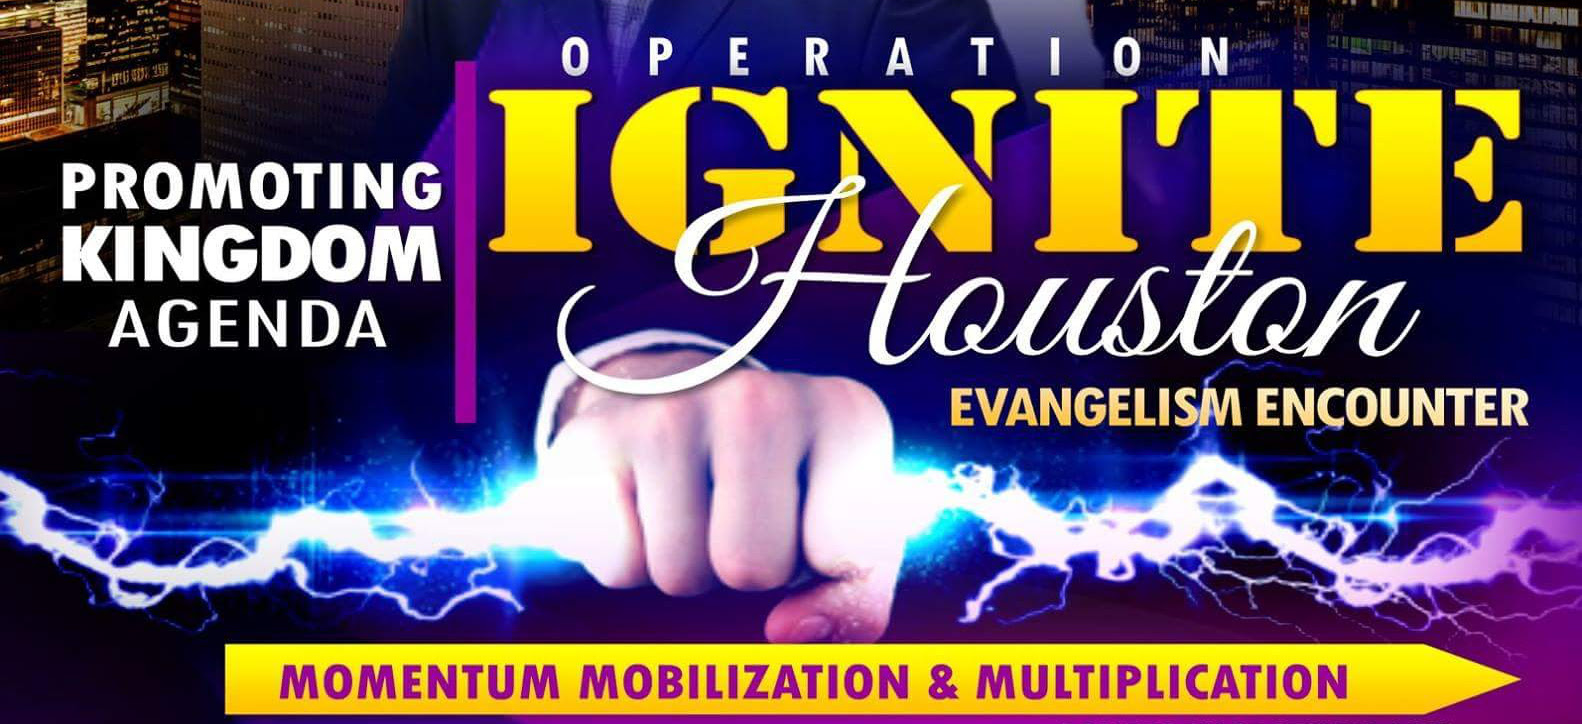 Dr. Rothra Speaking at Operation Ignite Houston Evangelism Conference this September